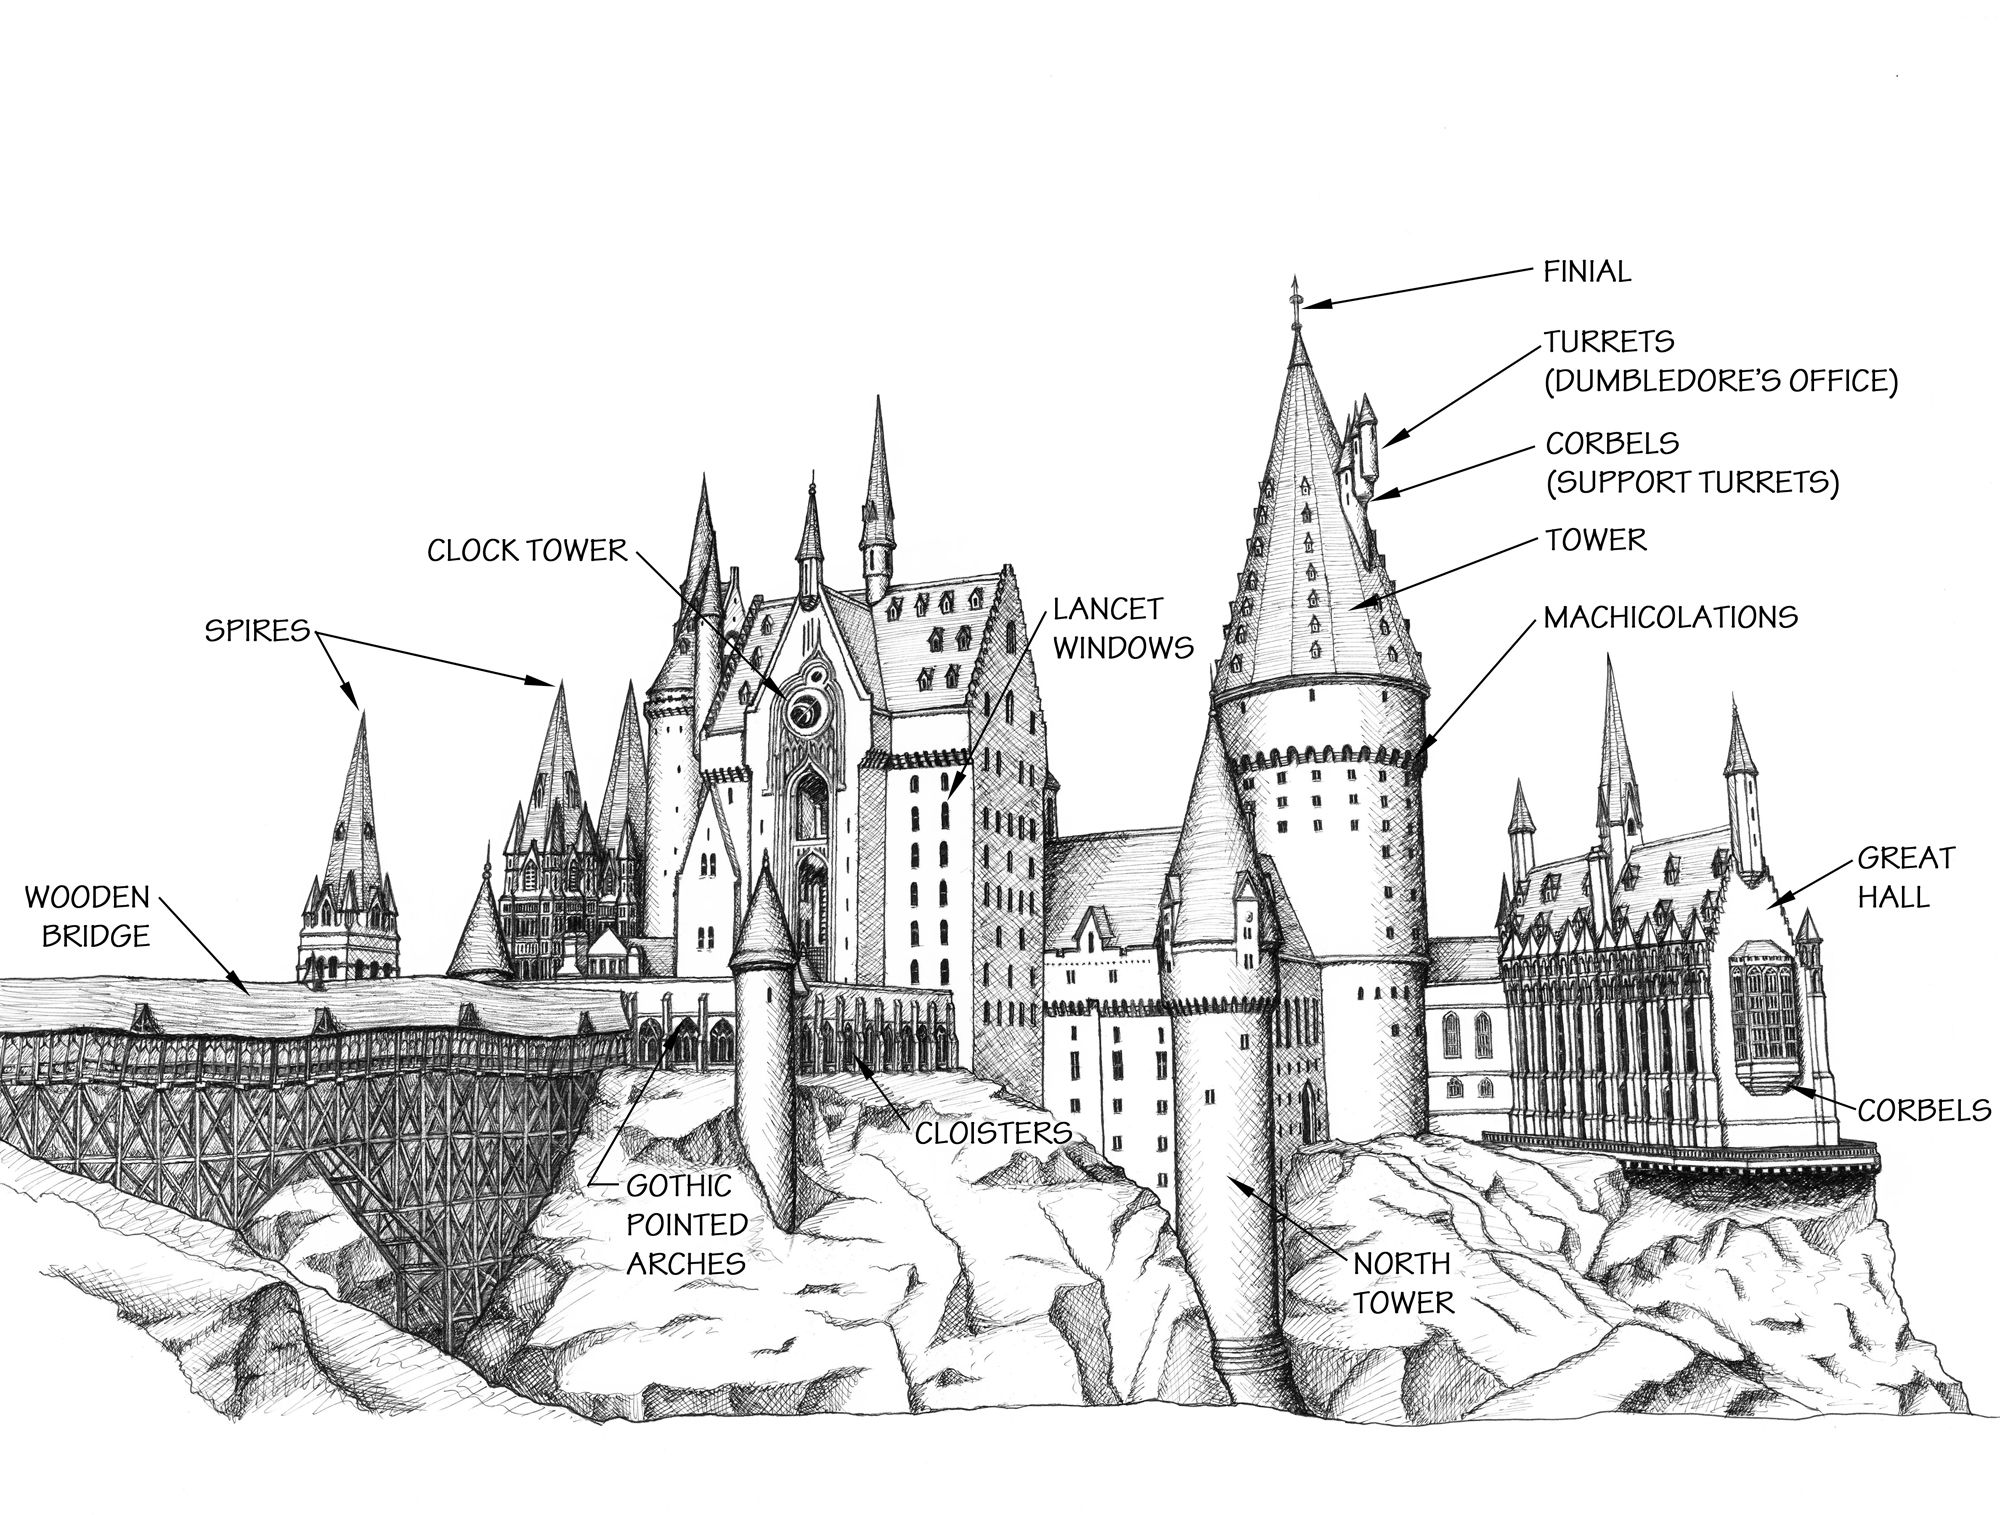 Hogwarts Castle Gothic Architectural Terms The Hogwarts